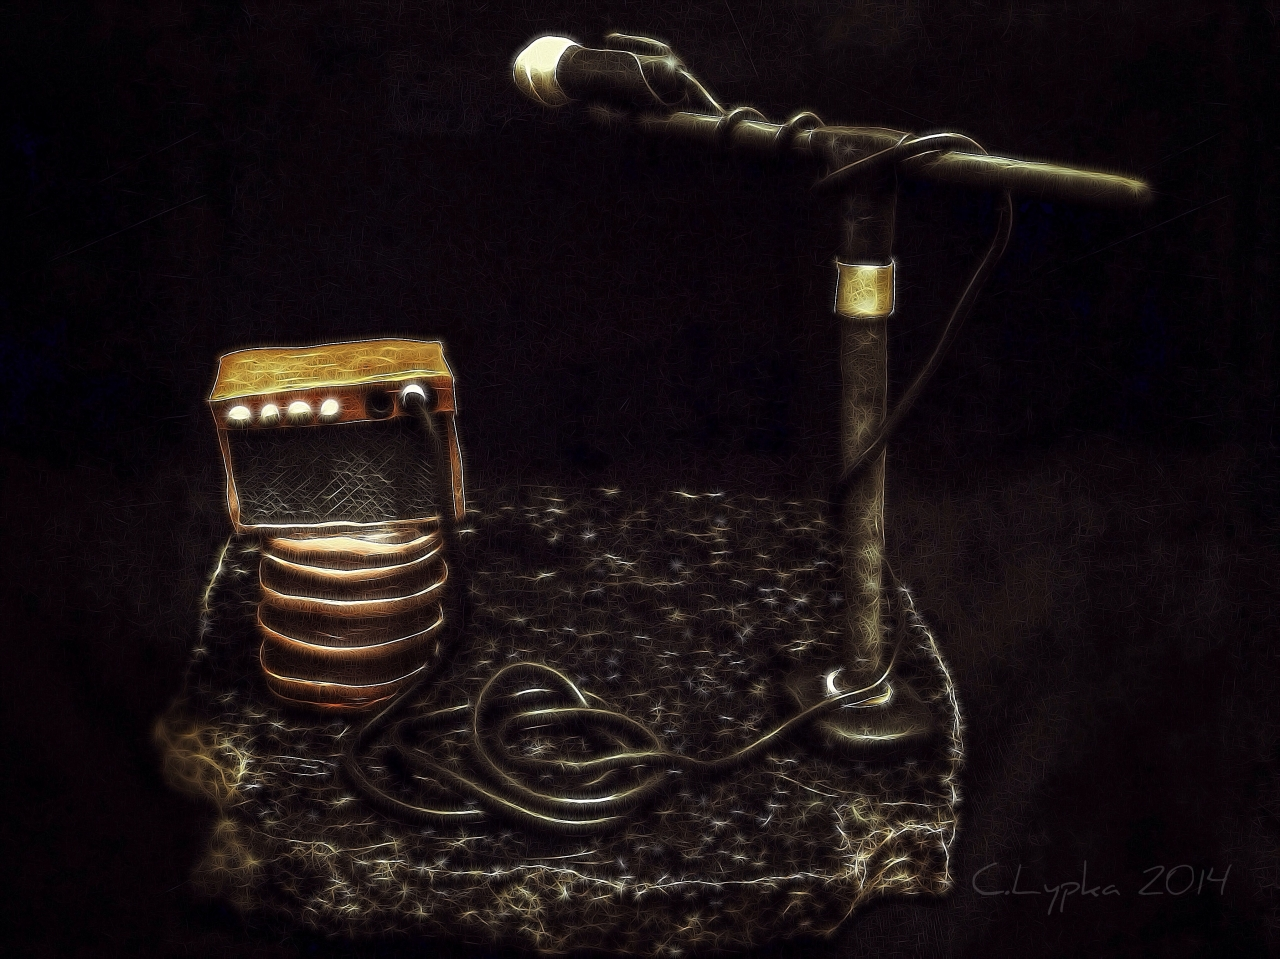 Amp, microphone, cord, and barrel all made from clay.